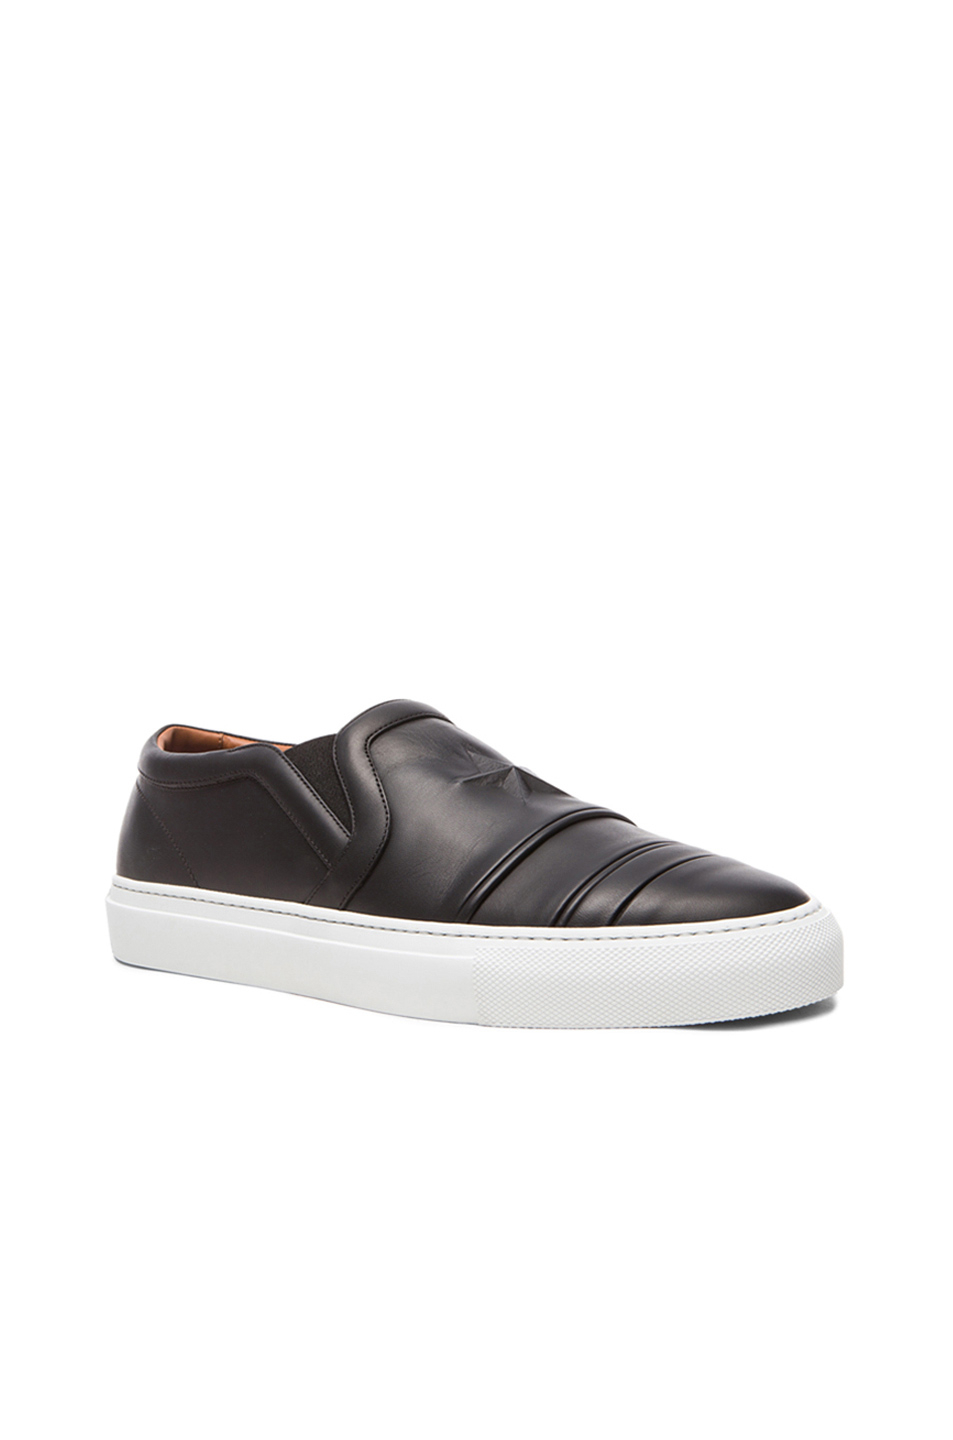 Givenchy Star Embossed Leather Skate Shoes